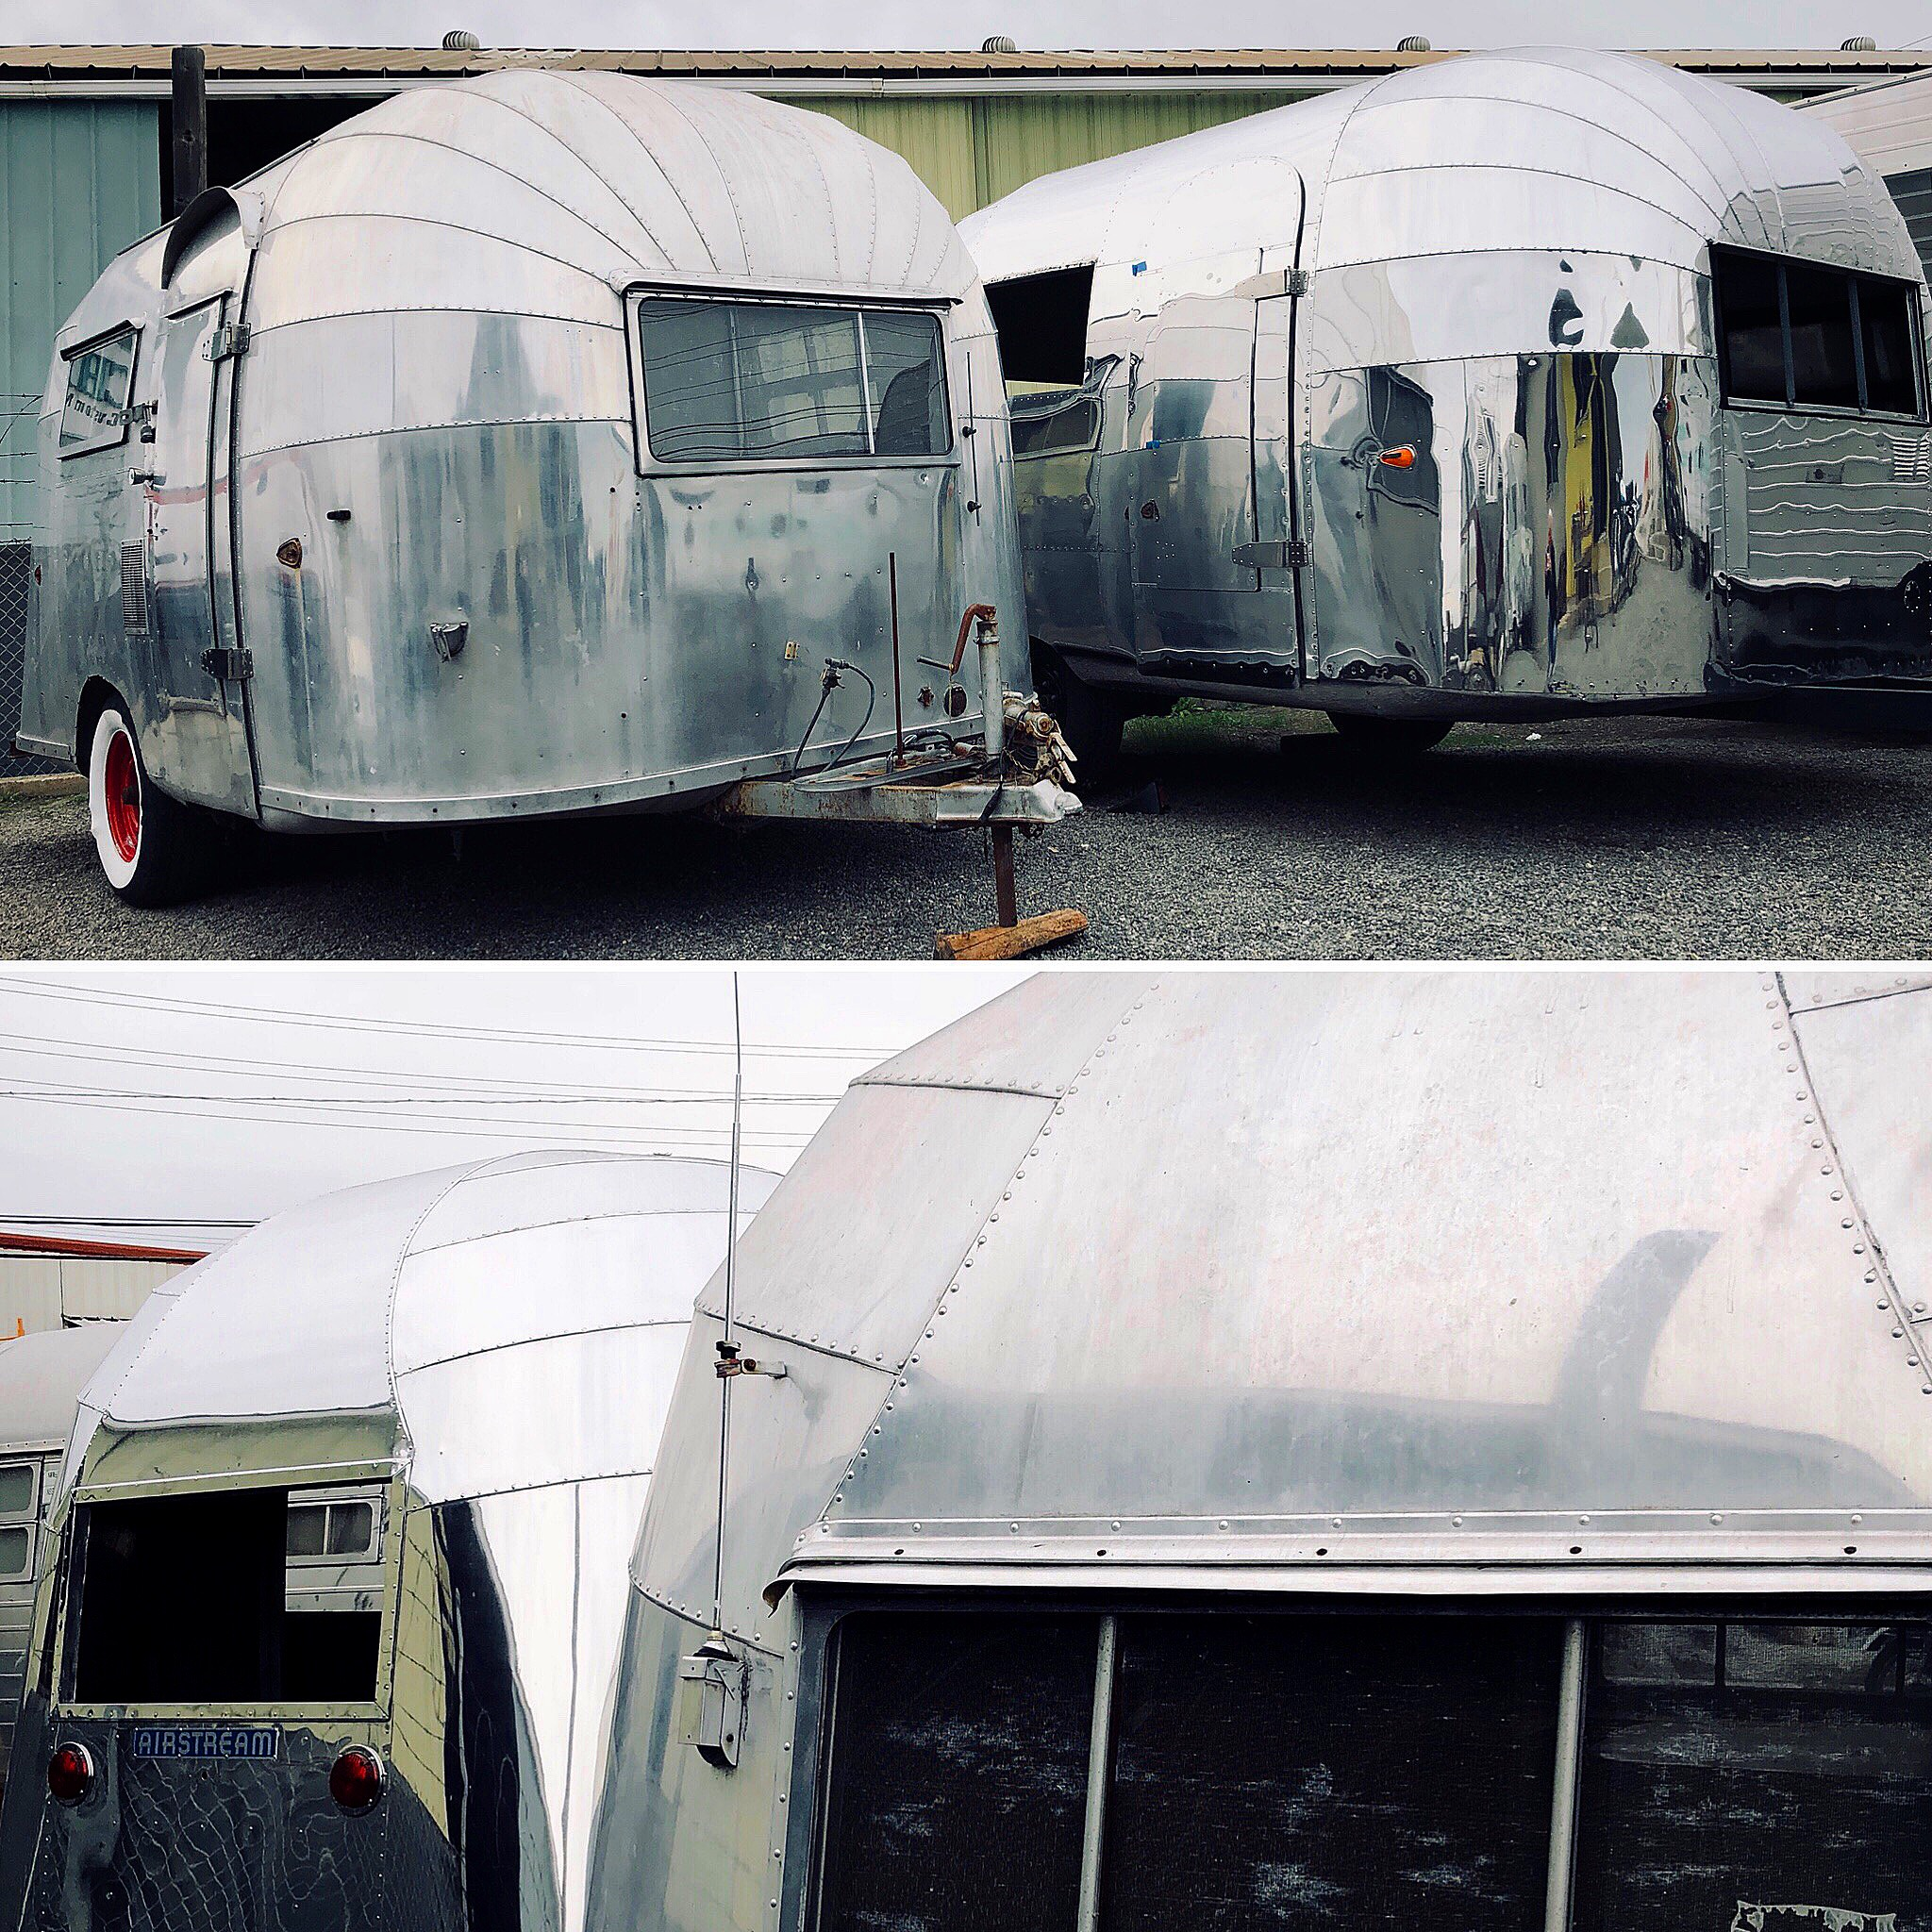 1956 Airstream Bubble Whaletail  - Rare, serial #346 from Airstream's California factory. Straight body and frame, 16'. For sale only as a So Cal restoration.